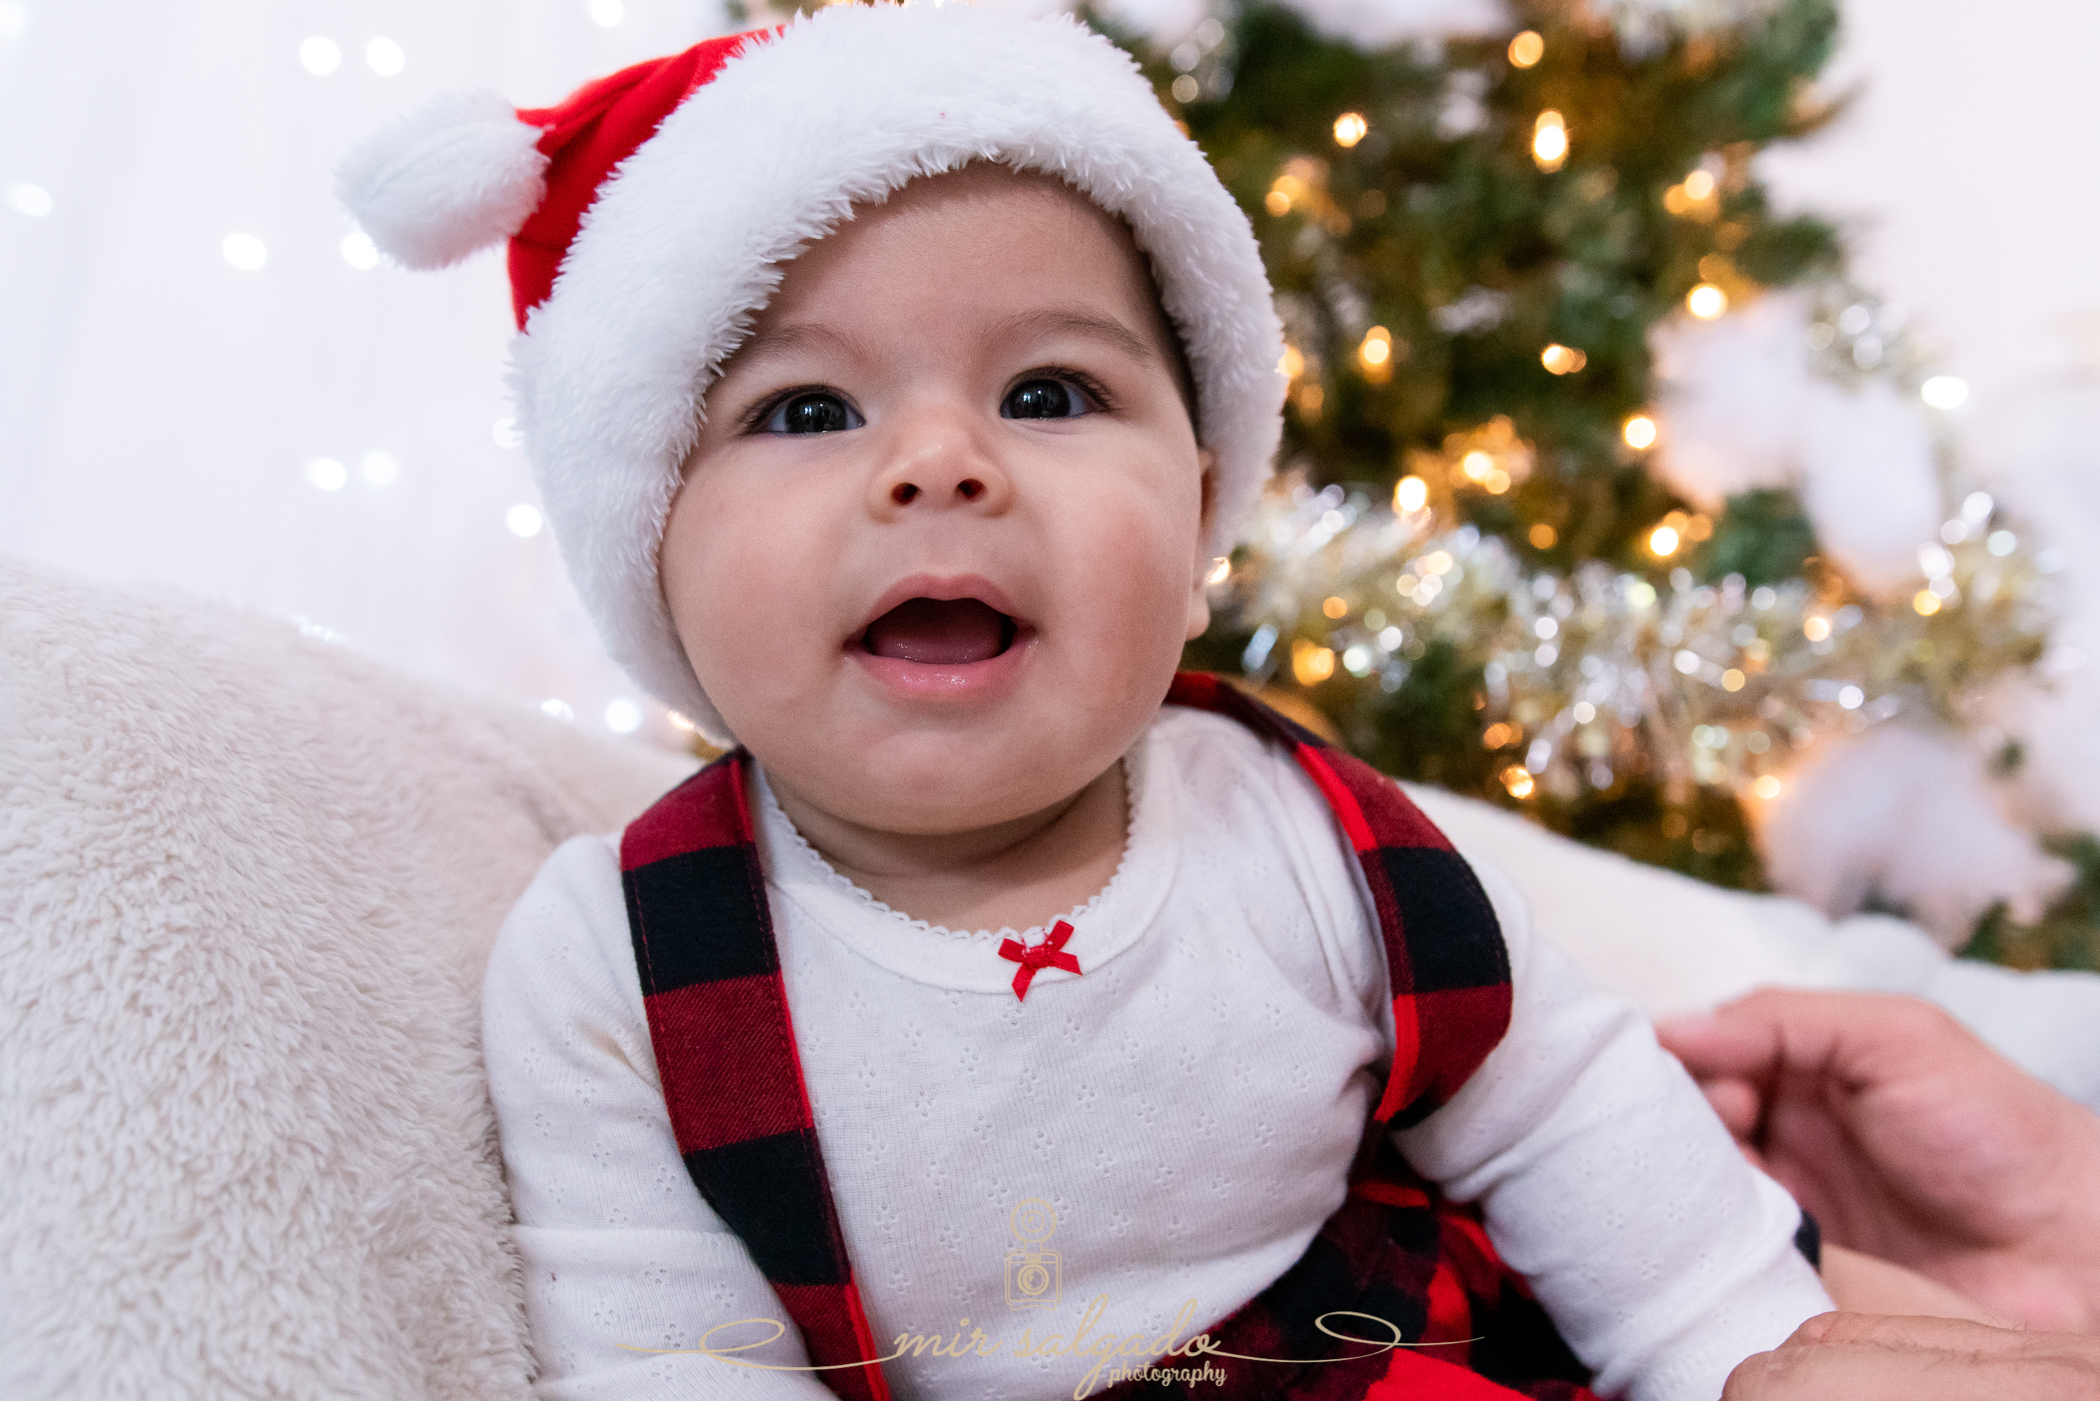 baby-portrait-session, tampa-baby-portrait-session, tampa-christmas-baby-photographers, baby-photographers-tampa